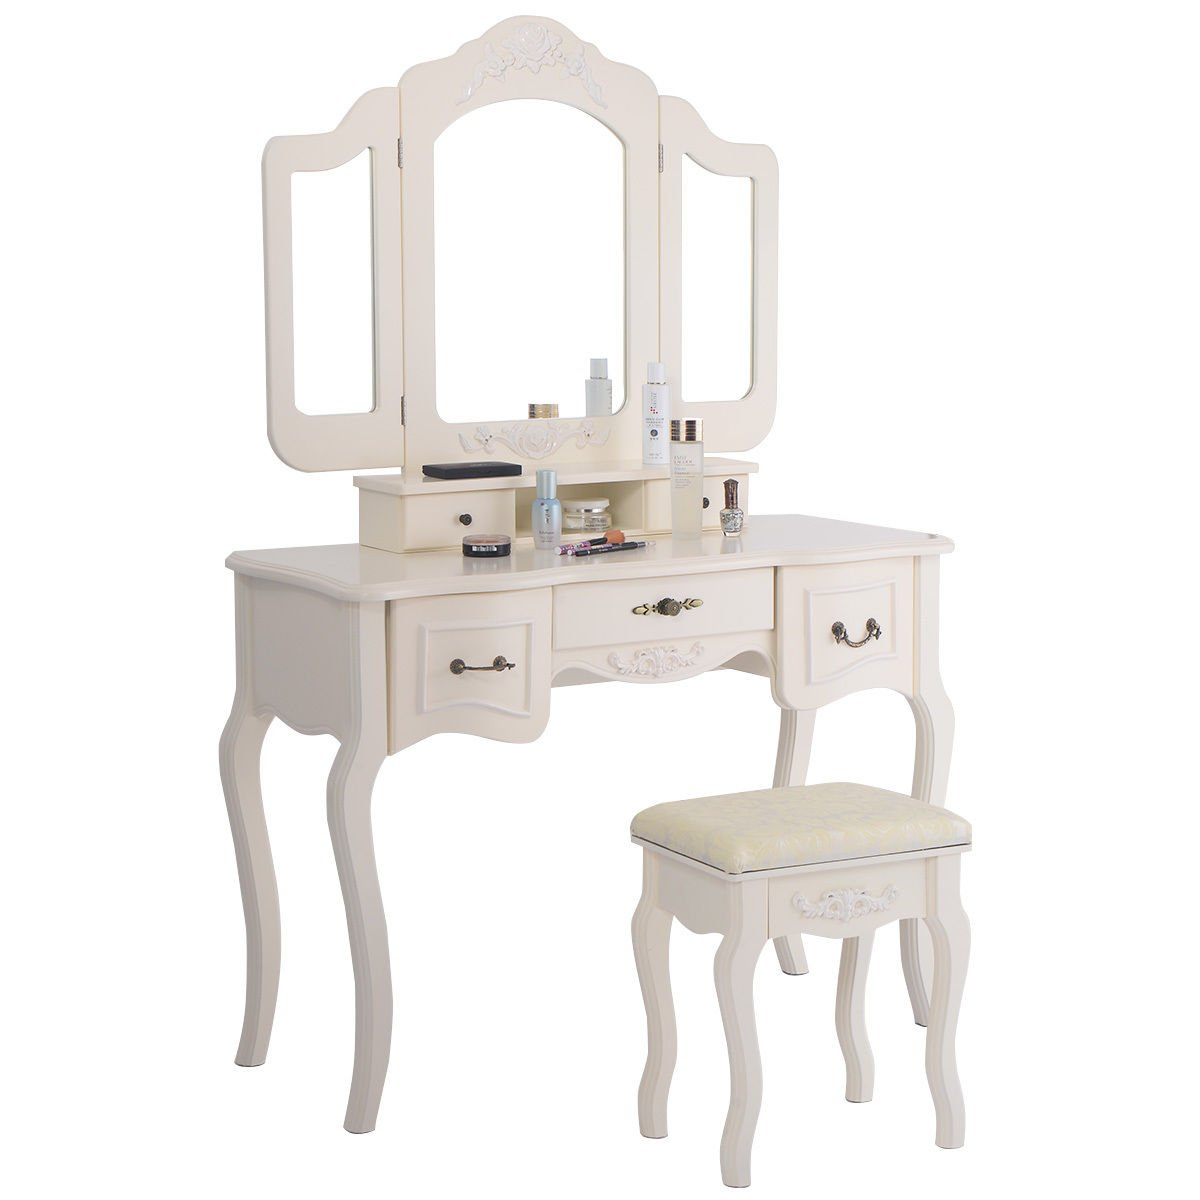 Tri Folding Vintage White Vanity Makeup Dressing Table Set 5 Drawers &stool 1